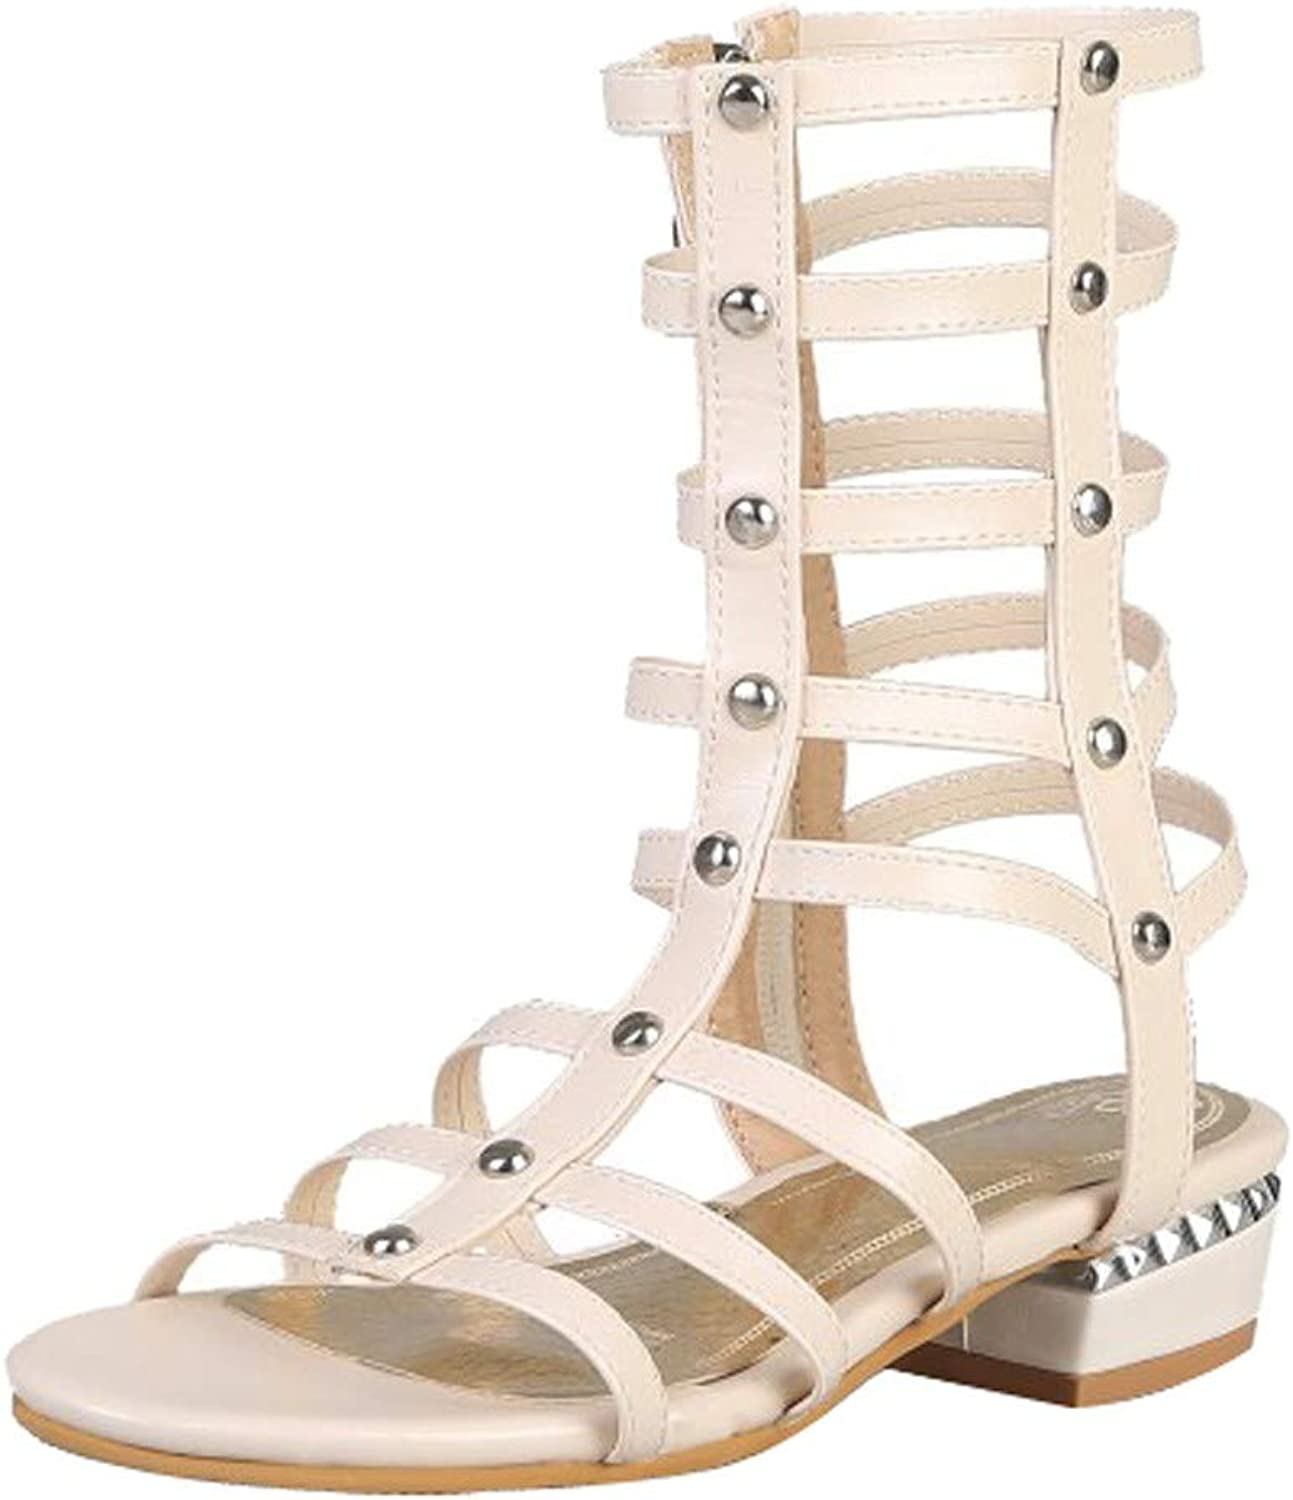 Women Cutout Gladiator Sandals - Ladies Studded Rhinestone Pearl Open Toe Ankle Strappy Caged Gladiator Sandals shoes